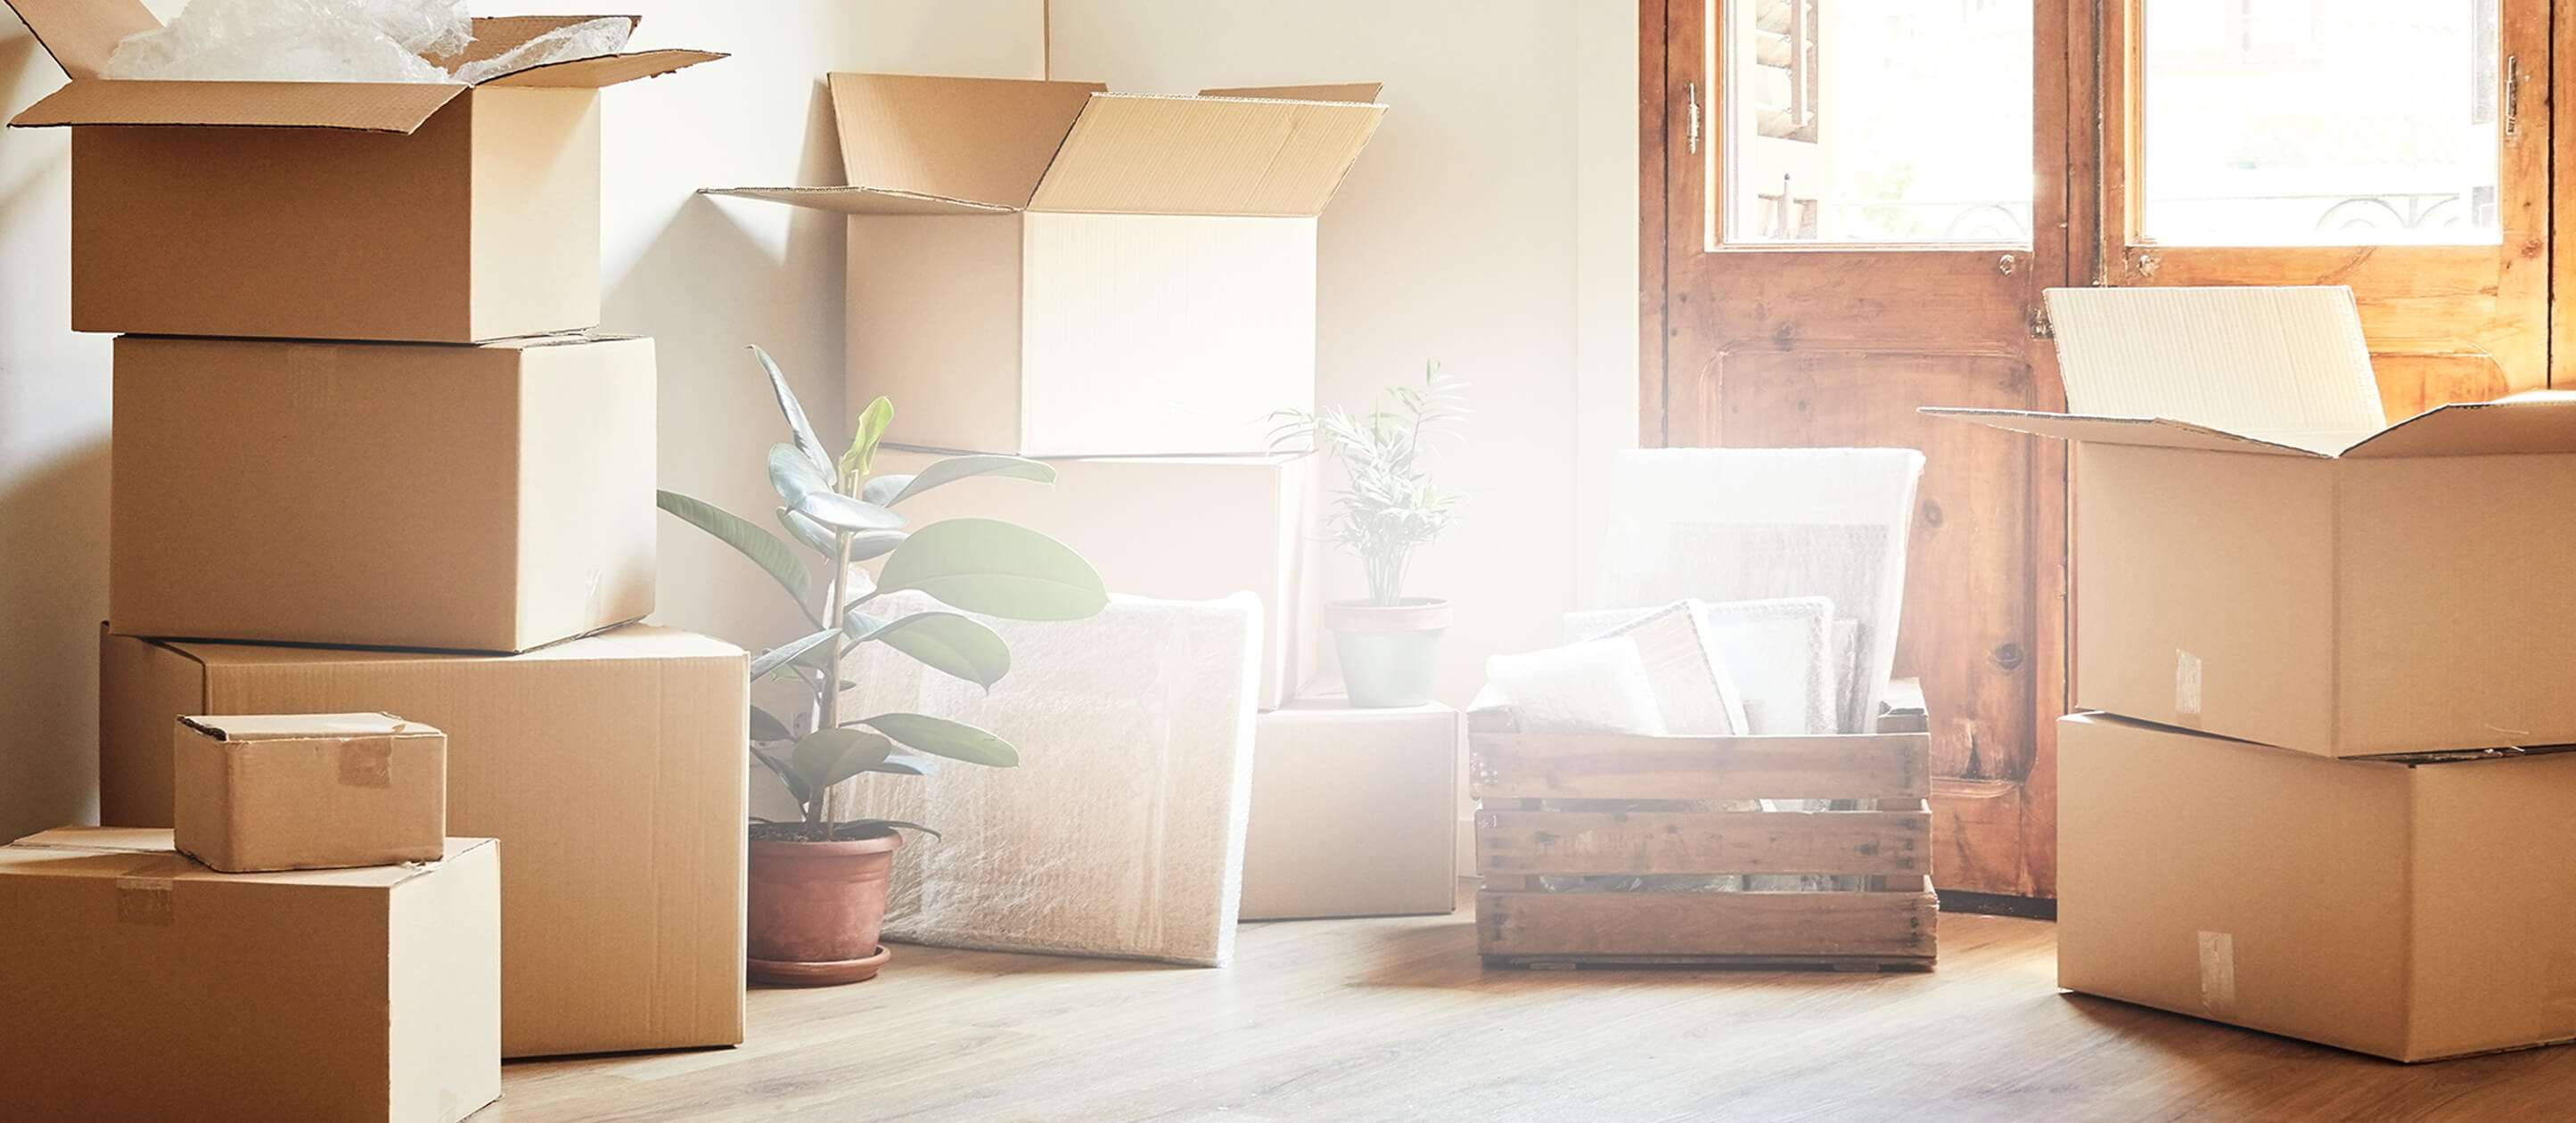 Image of opened moving boxes inside a house